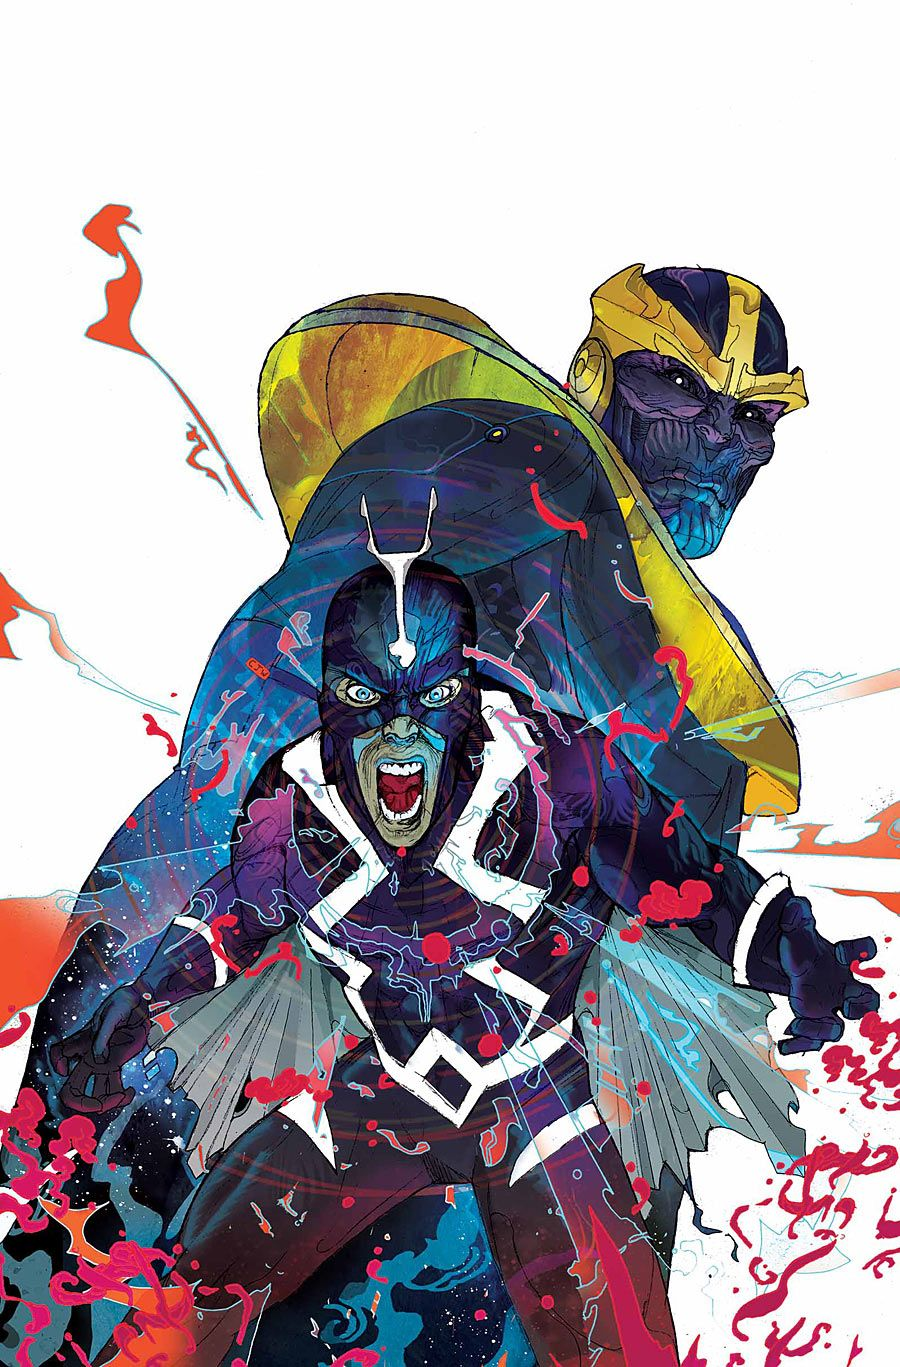 WHAT IF? INFINITY – INHUMANS #1 JOSHUA WILLIAMSON (w) • RILEY ROSSMO (a) Cover by CHRISTIAN WARD